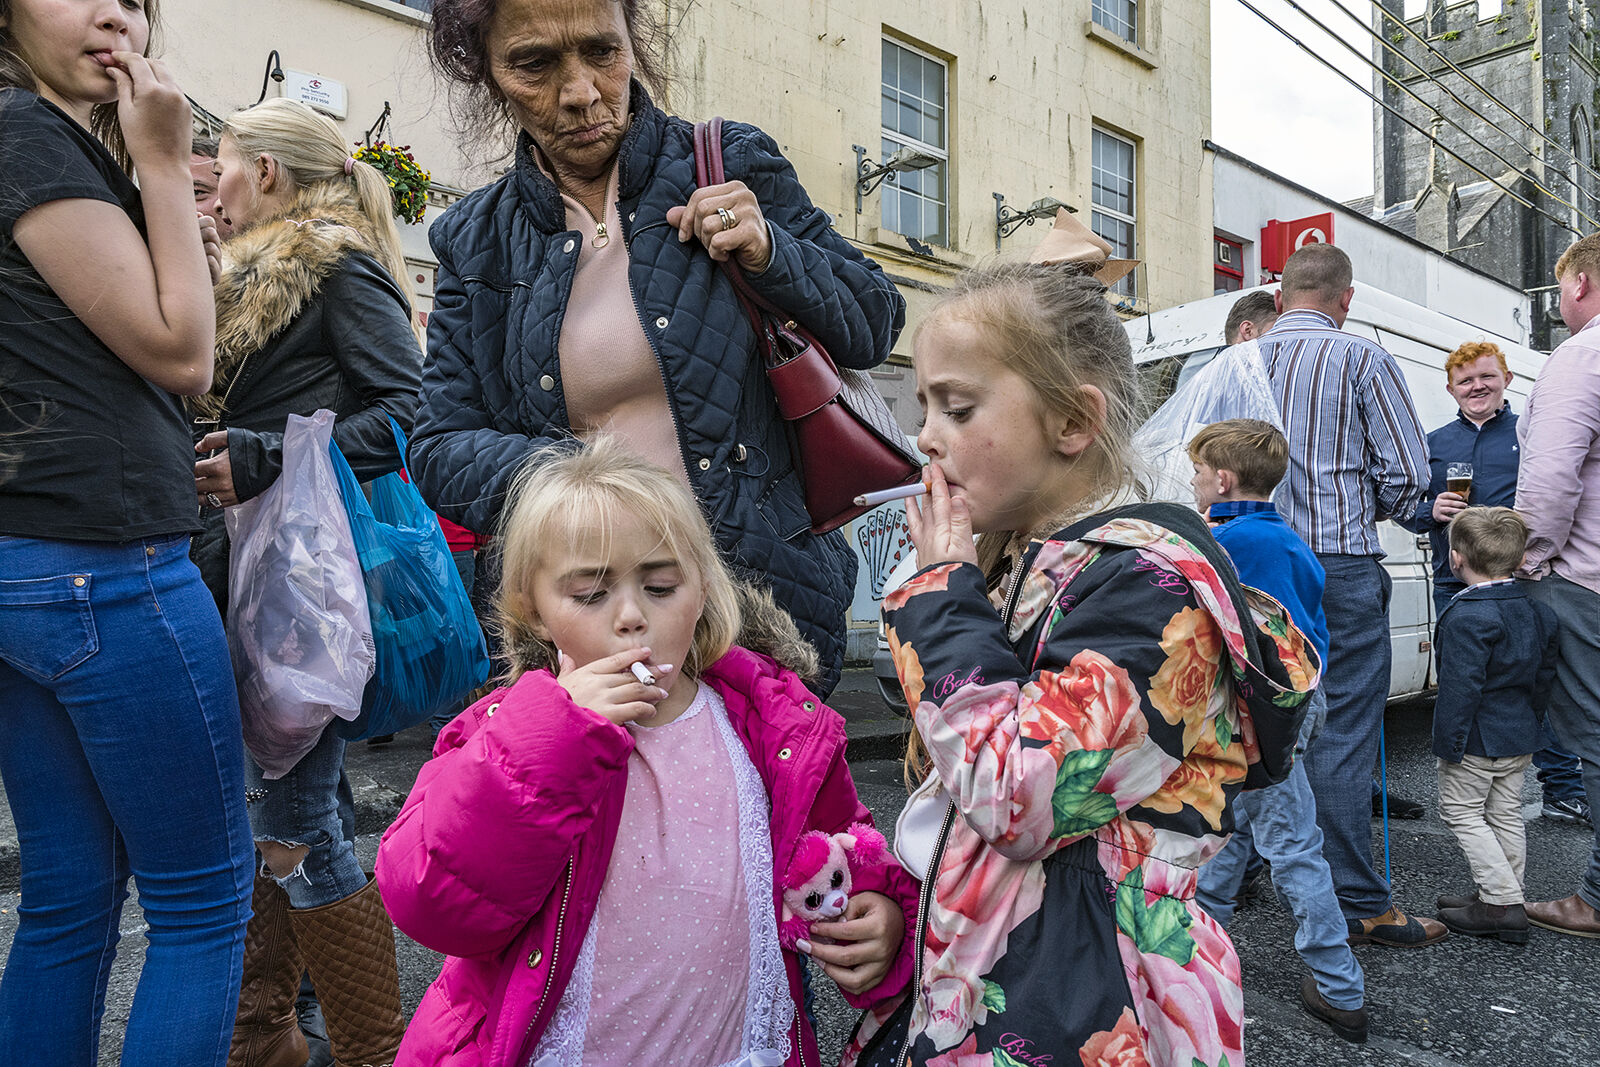 Toy Cigarettes, Galway, Ireland 2019 (no. 2)